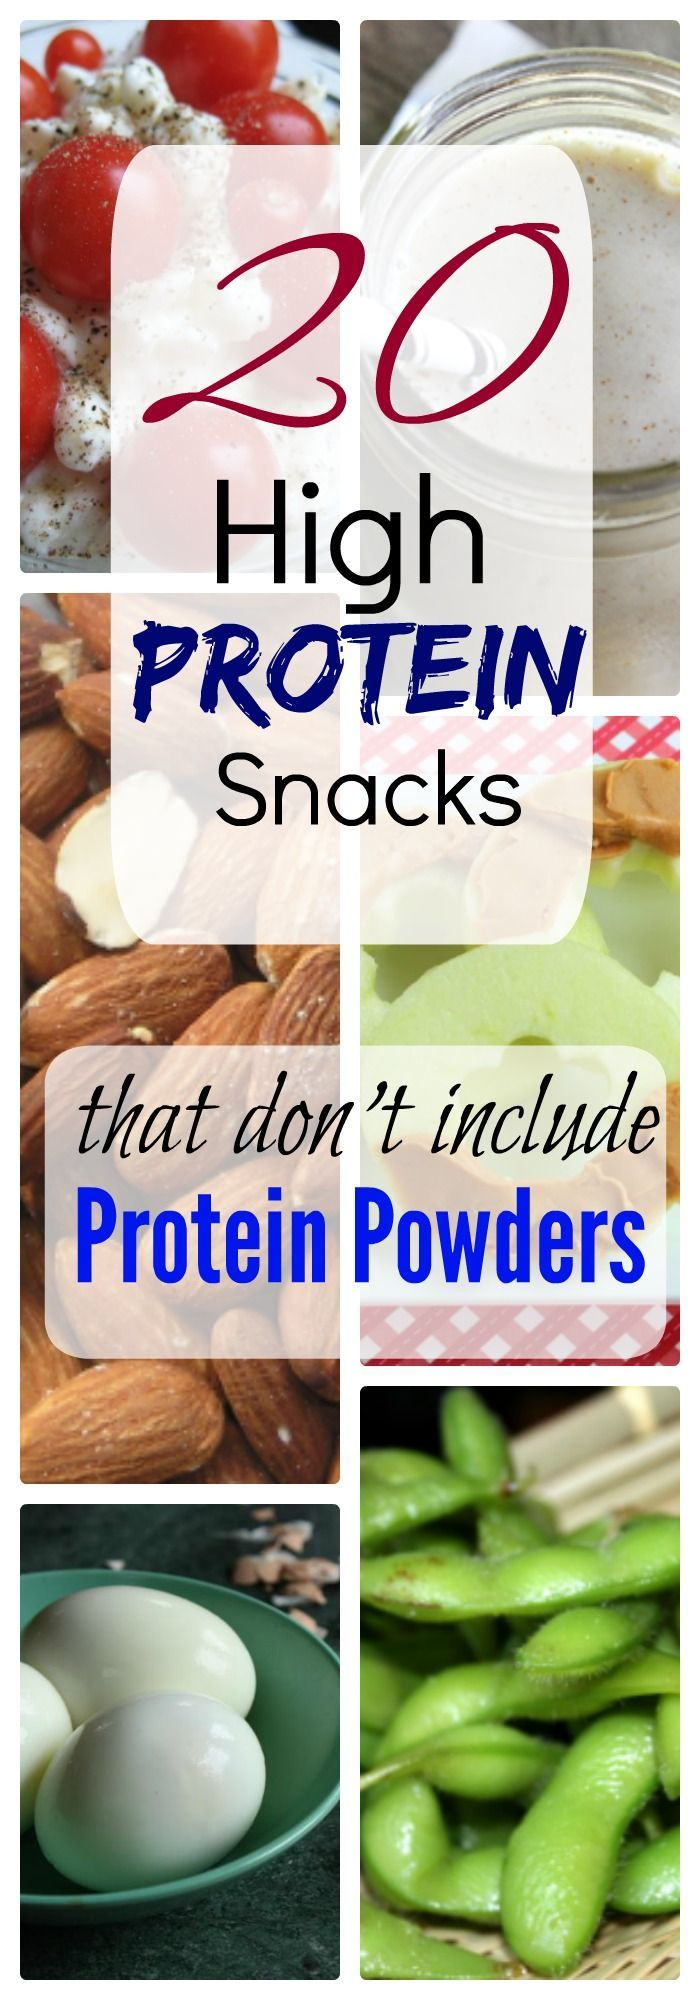 20 High protein snack ideas that dont include protein powders